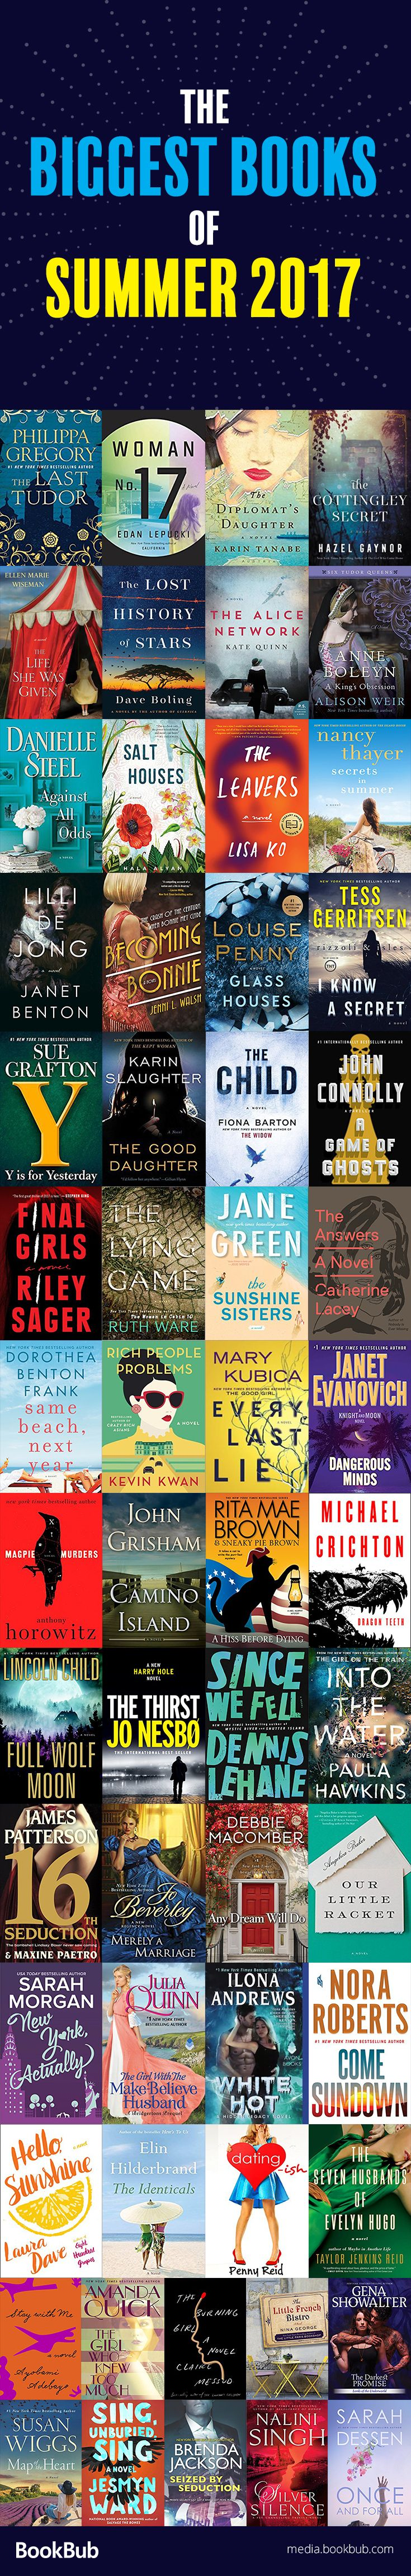 **A great book list for your summer 2017 reading list. Including new popular books and beach reads you don't want to miss.